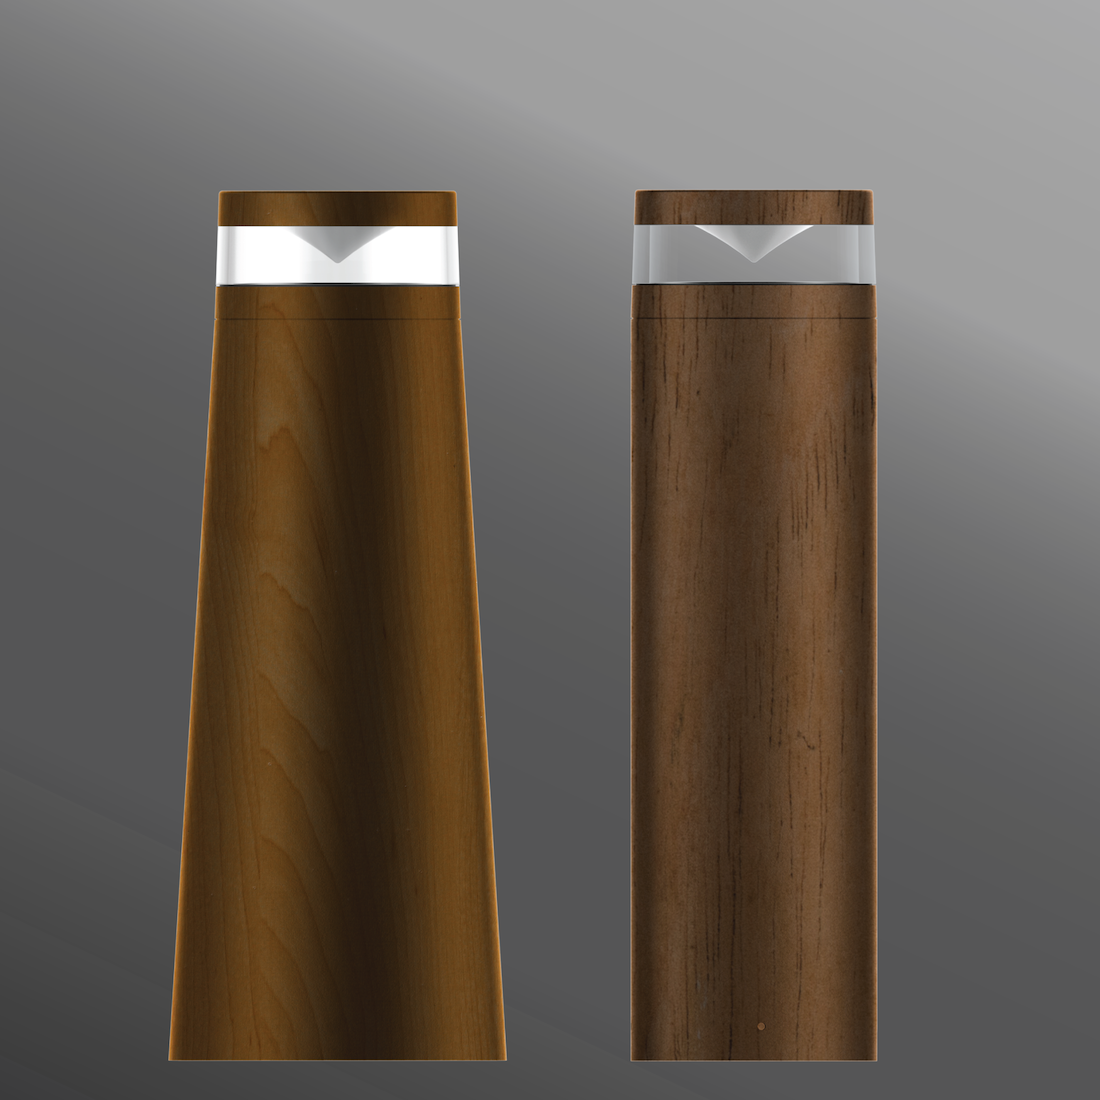 Click to view Ligman Lighting's Lightwave Bollard - Woodland Series (model ULW-108XX).